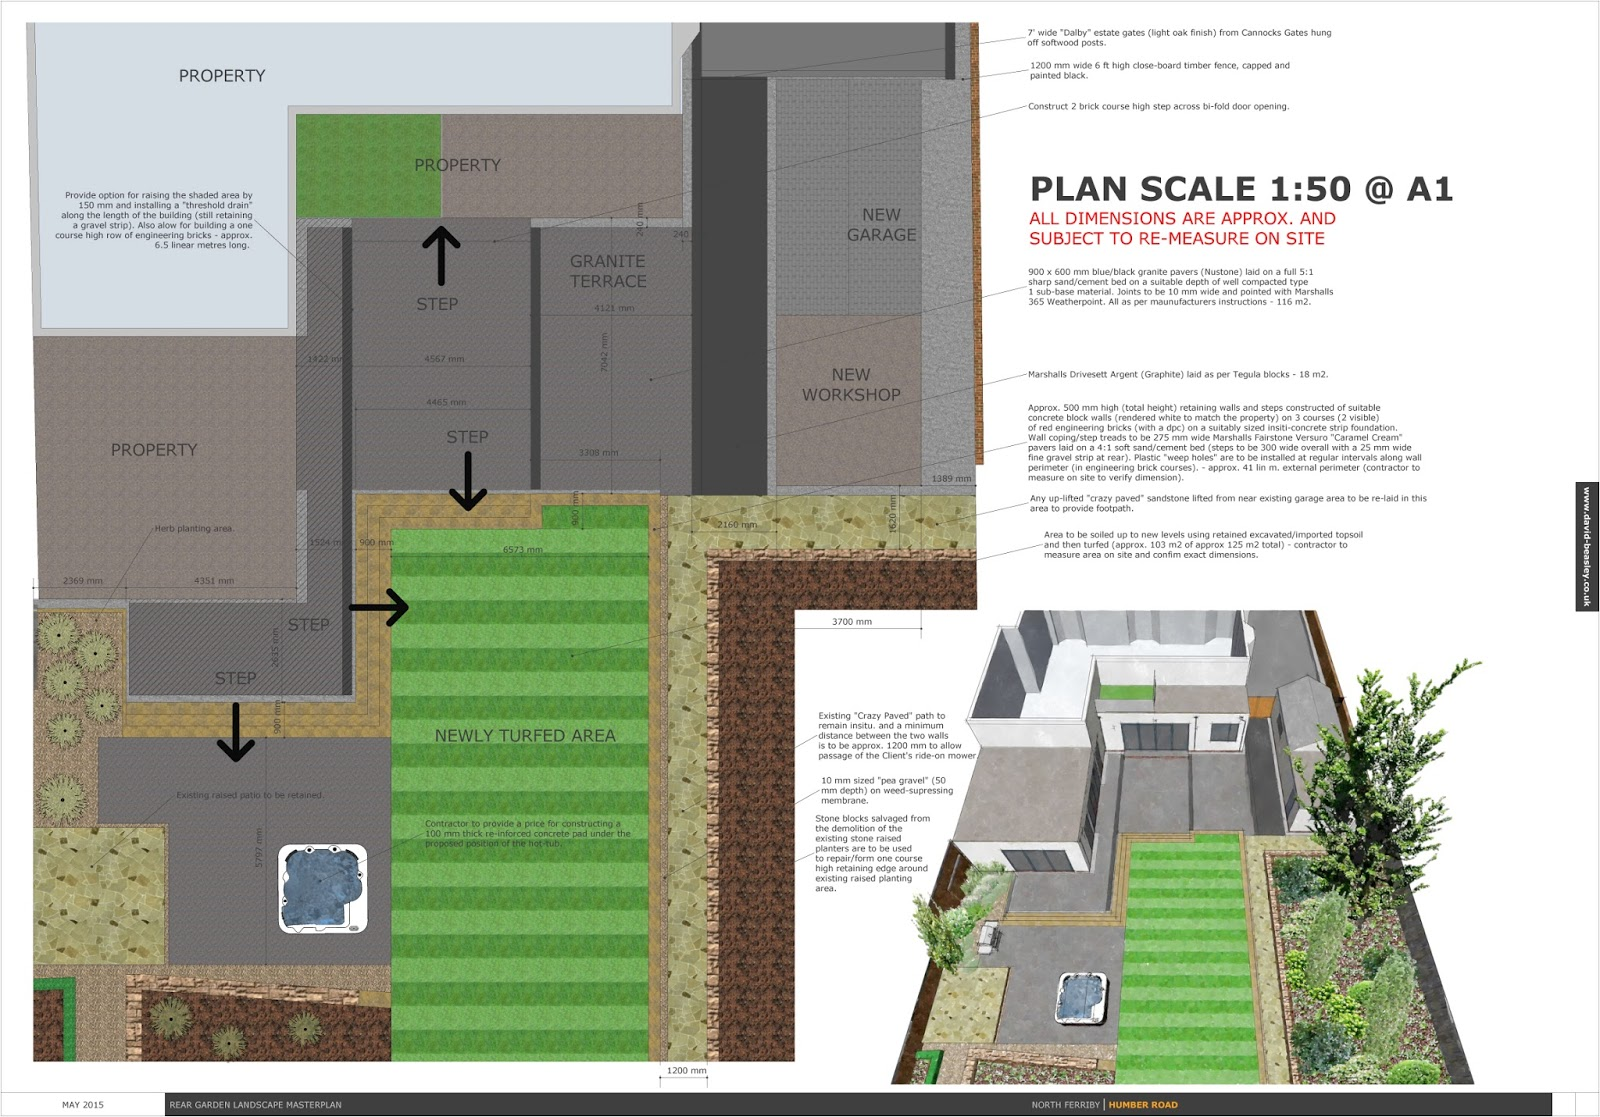 Garden Design Yorkshire garden designer in the hull area, beverley, east yorkshire, north